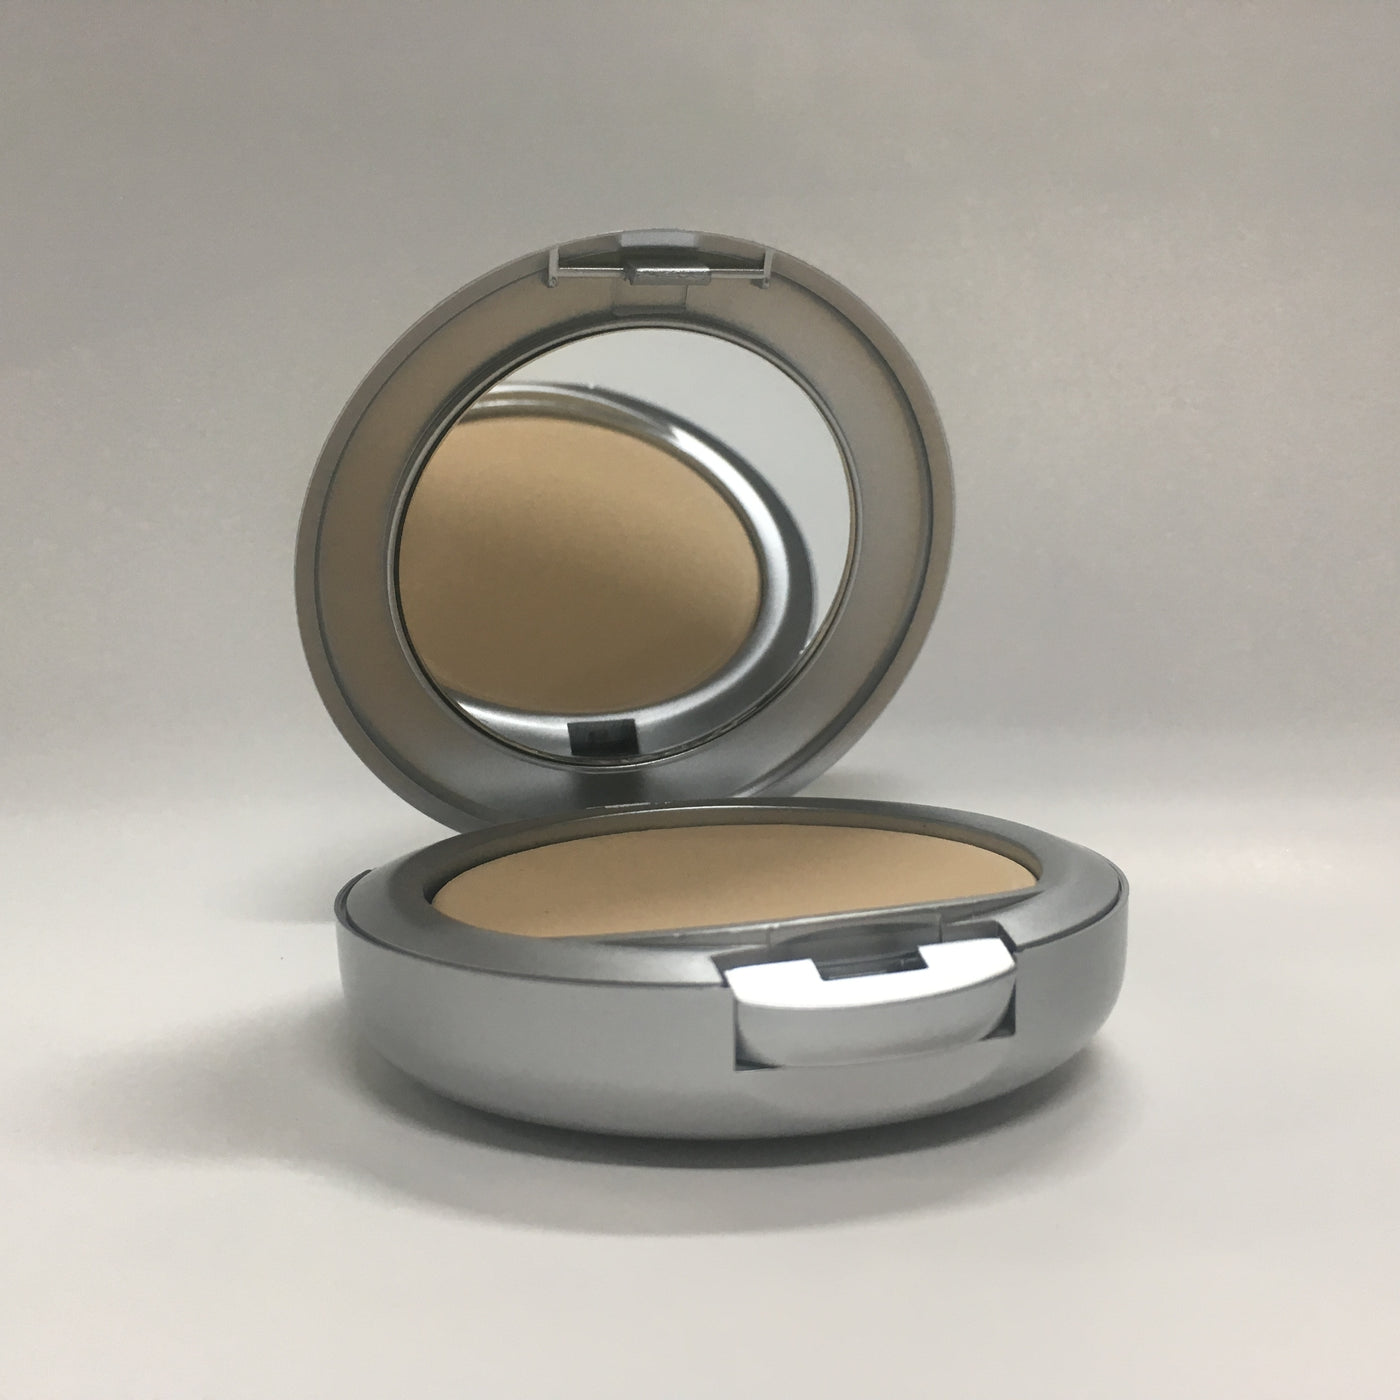 Cruelty Free Face Pressed Powder Foundation Compact Porcelain 5 Vegan Grocery Store